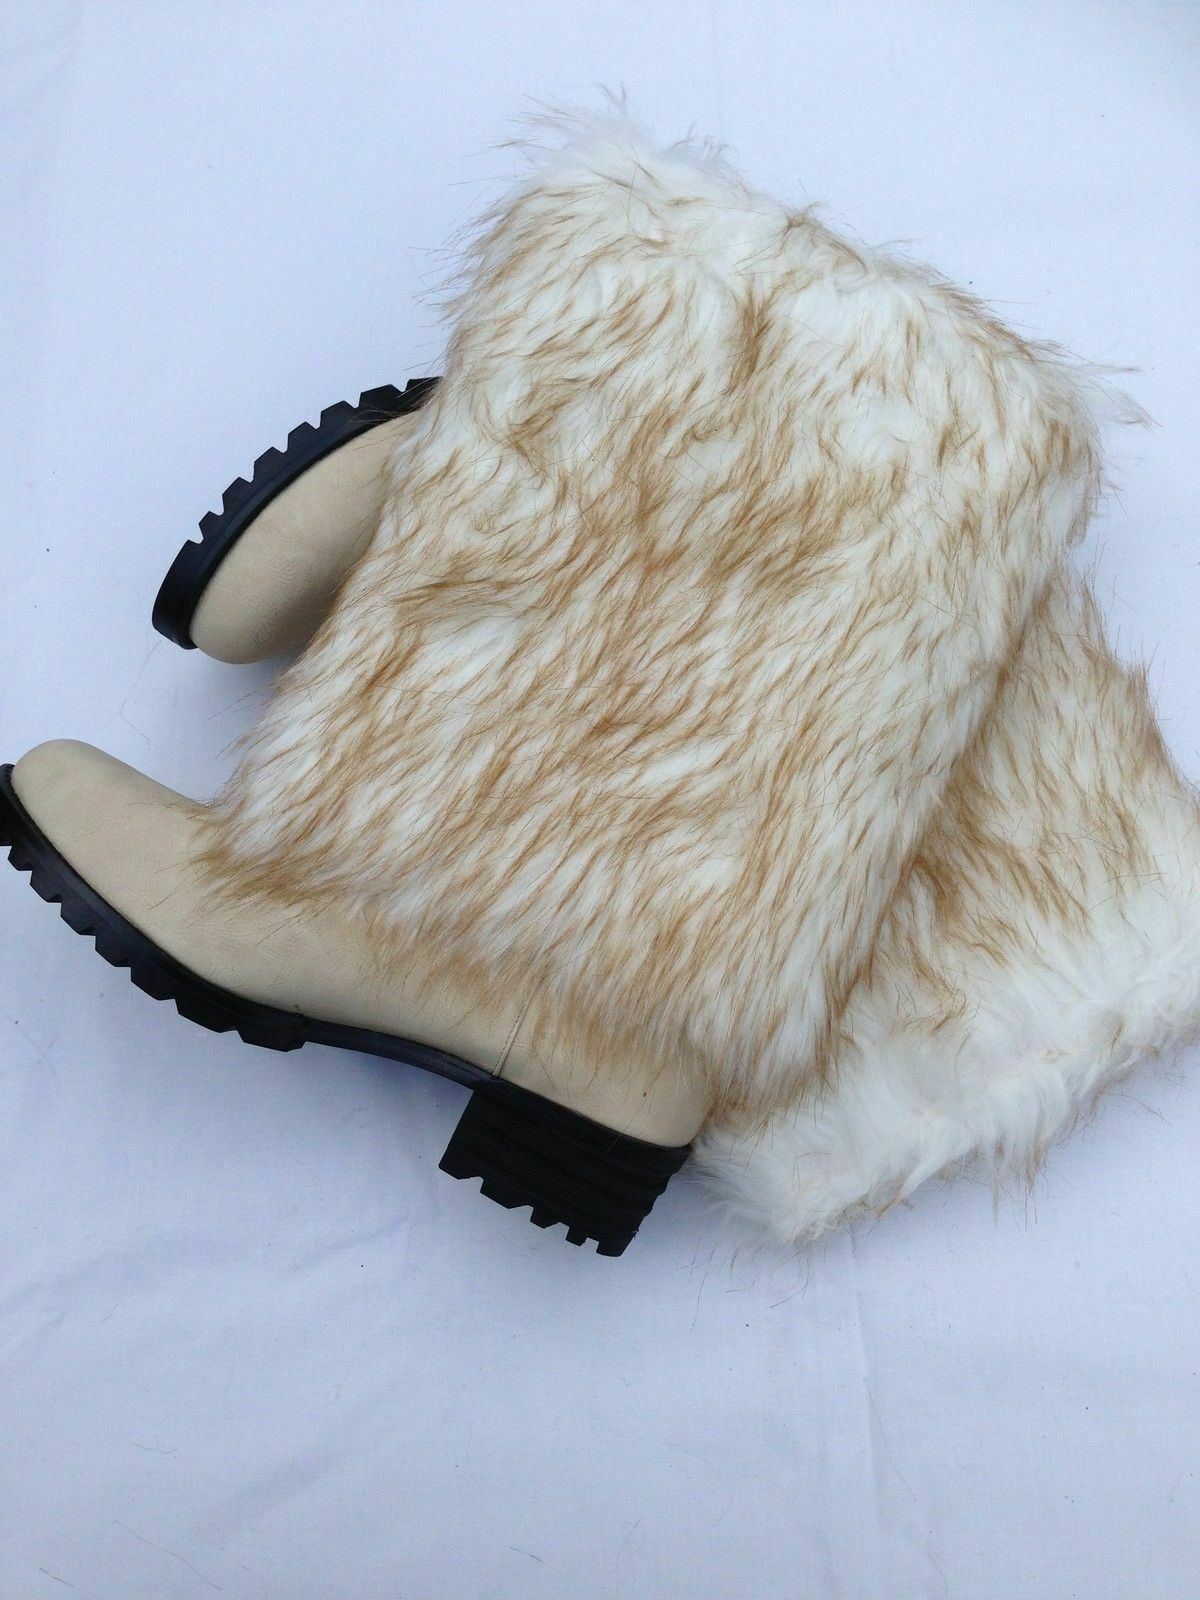 Bulk buy buy buy 6 x Womens Yeti Winter Boots Cream Faux Fur Size 4 - 6 1 2 UK 37 - 40EU dc3101